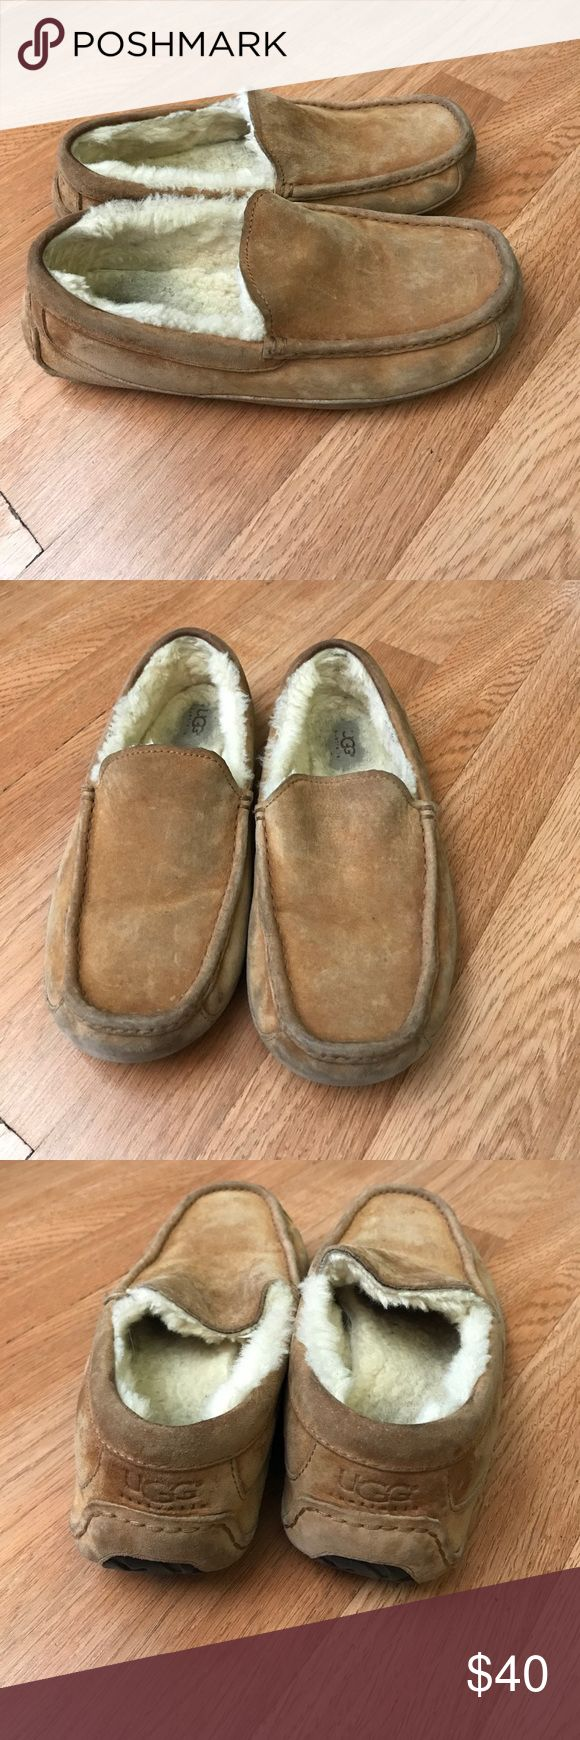 Ugg men's slippers size 9 In good condition very comfortable UGG Shoes